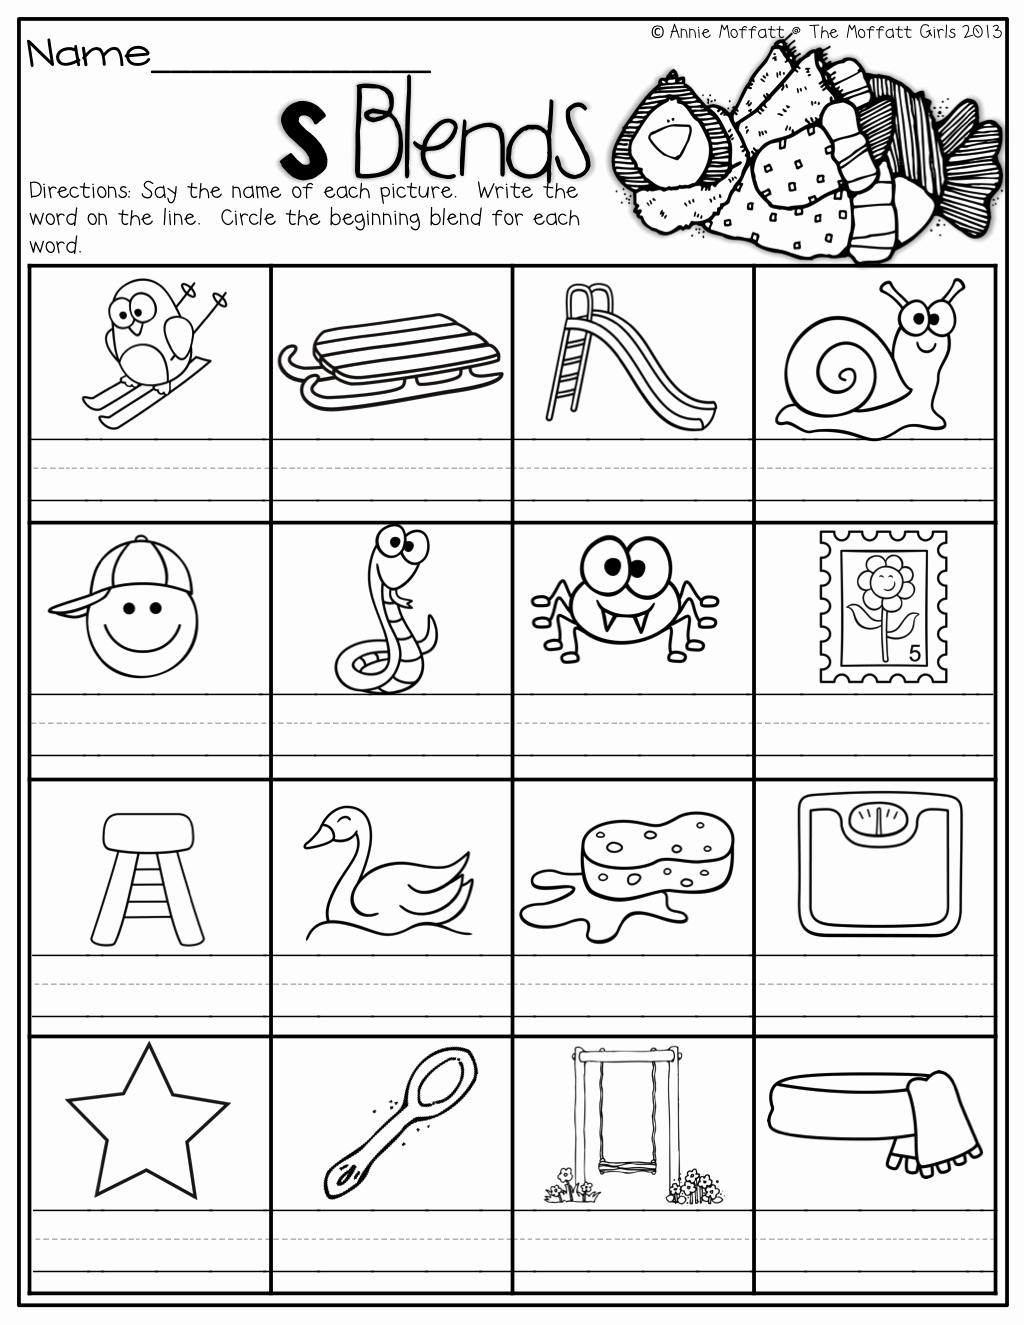 Blends Worksheet for First Grade Awesome the Moffatt Girls Winter Math and Literacy Packet First